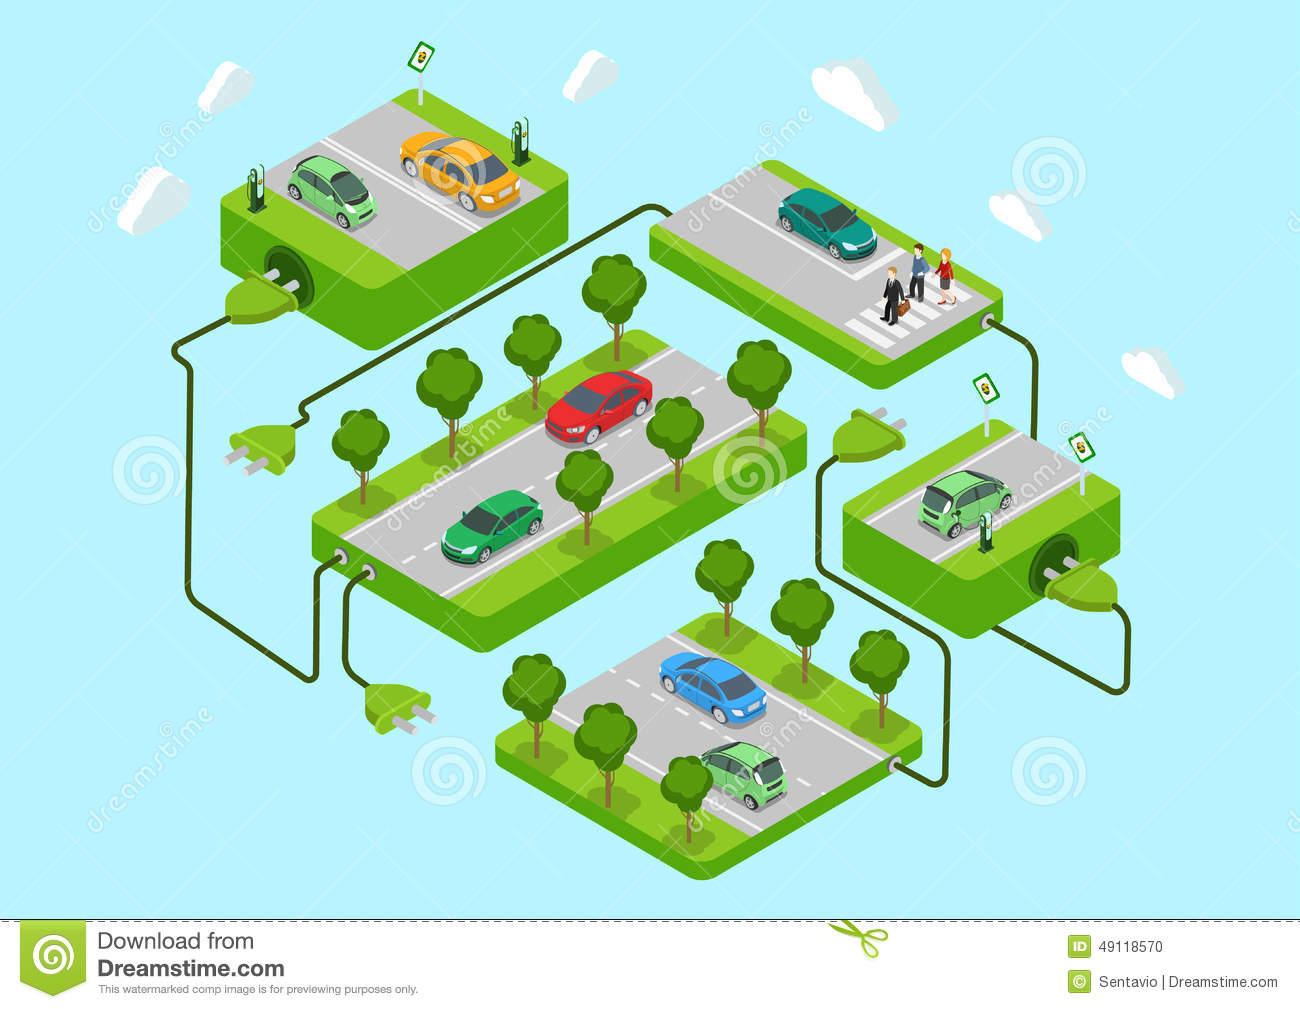 Are Electric Cars Renewable Energy